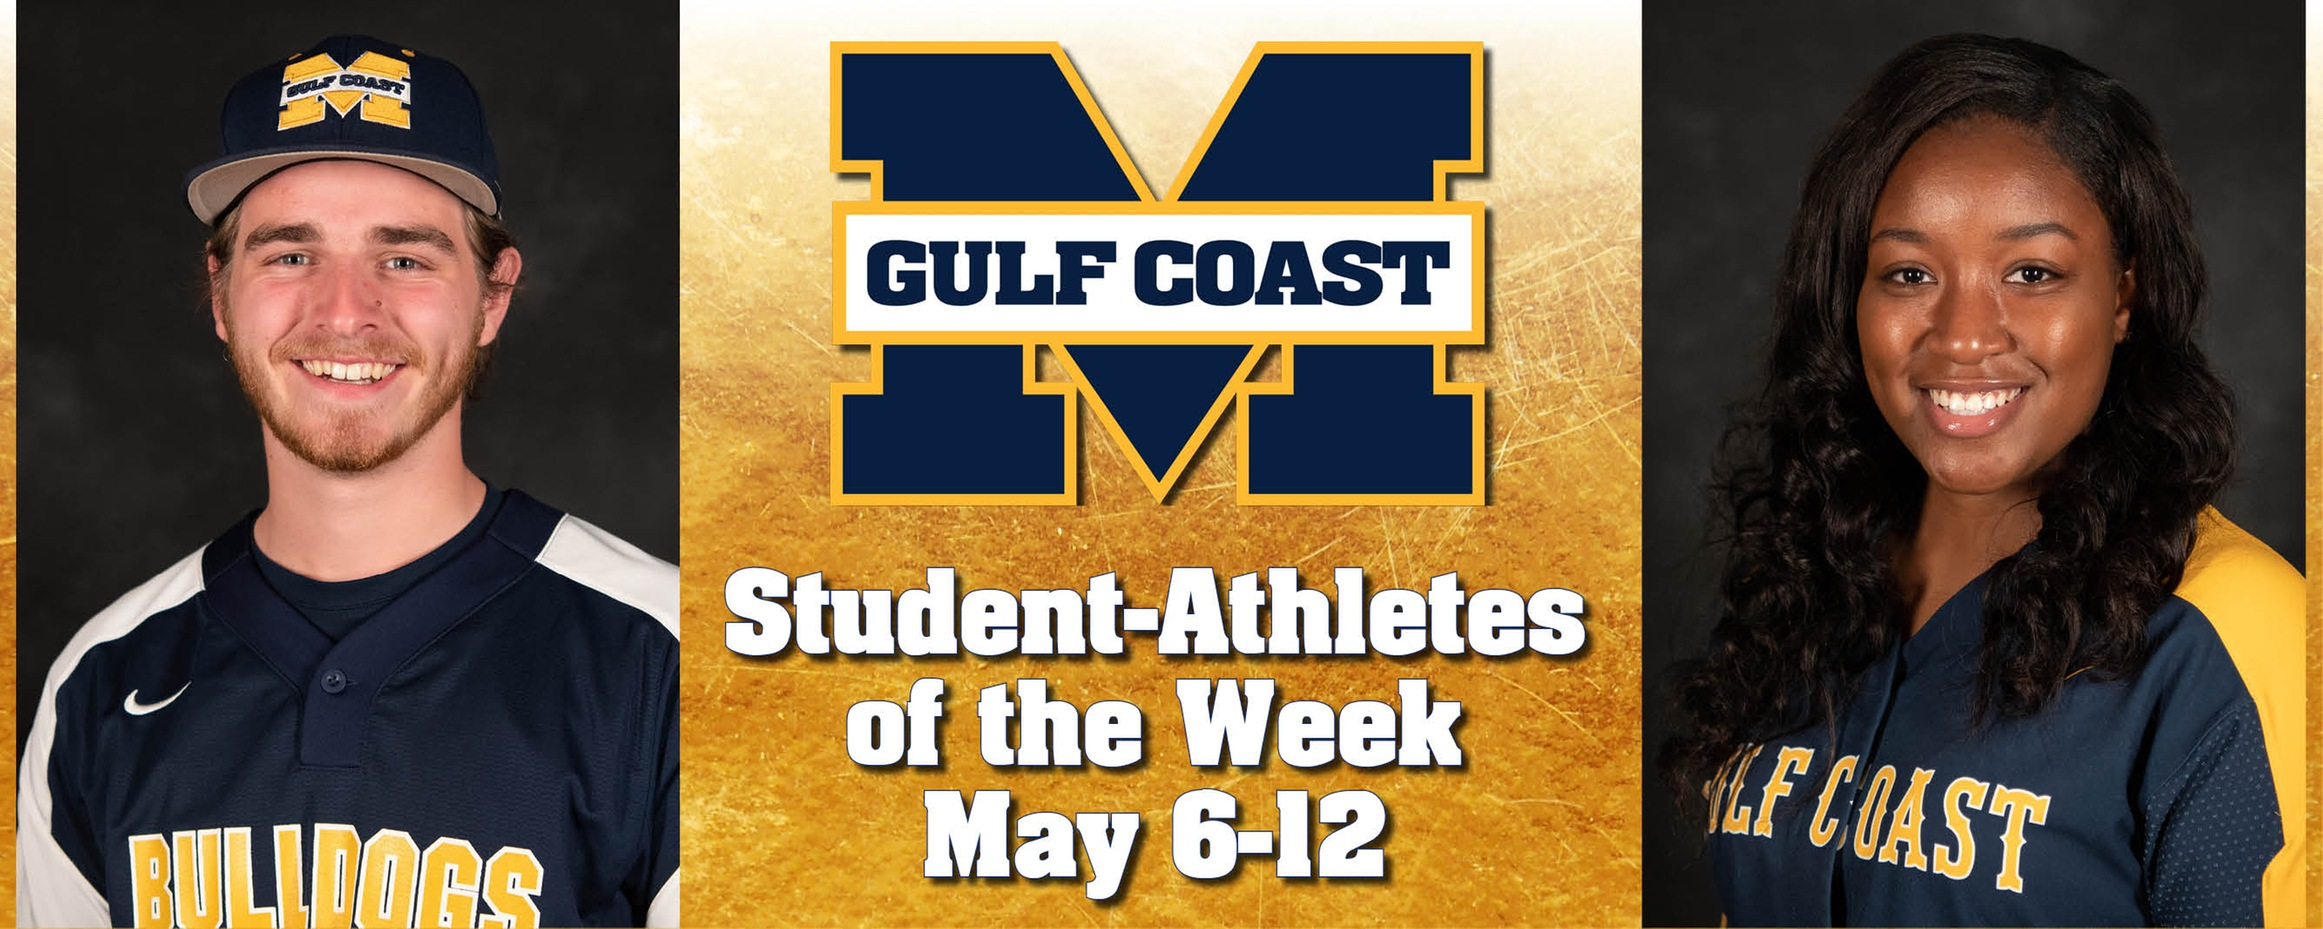 Gilbert, Hopson named MGCCC Student-Athletes of the Week